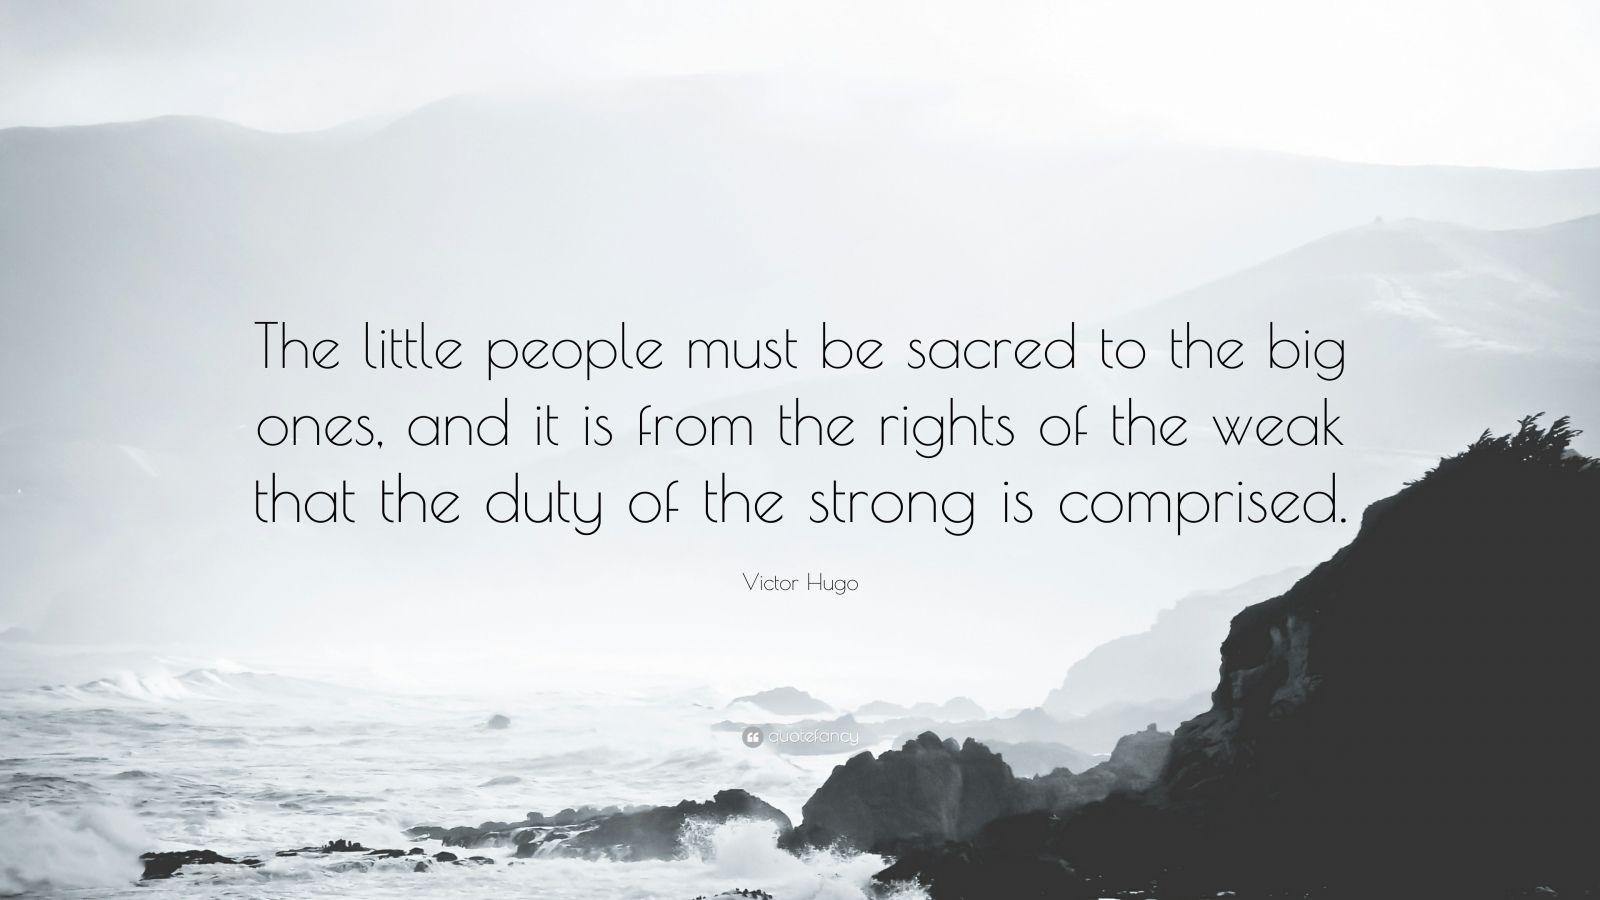 """Victor Hugo Quote: """"The little people must be sacred to the big ones, and it is from the rights of the weak that the duty of the strong is comprised."""""""